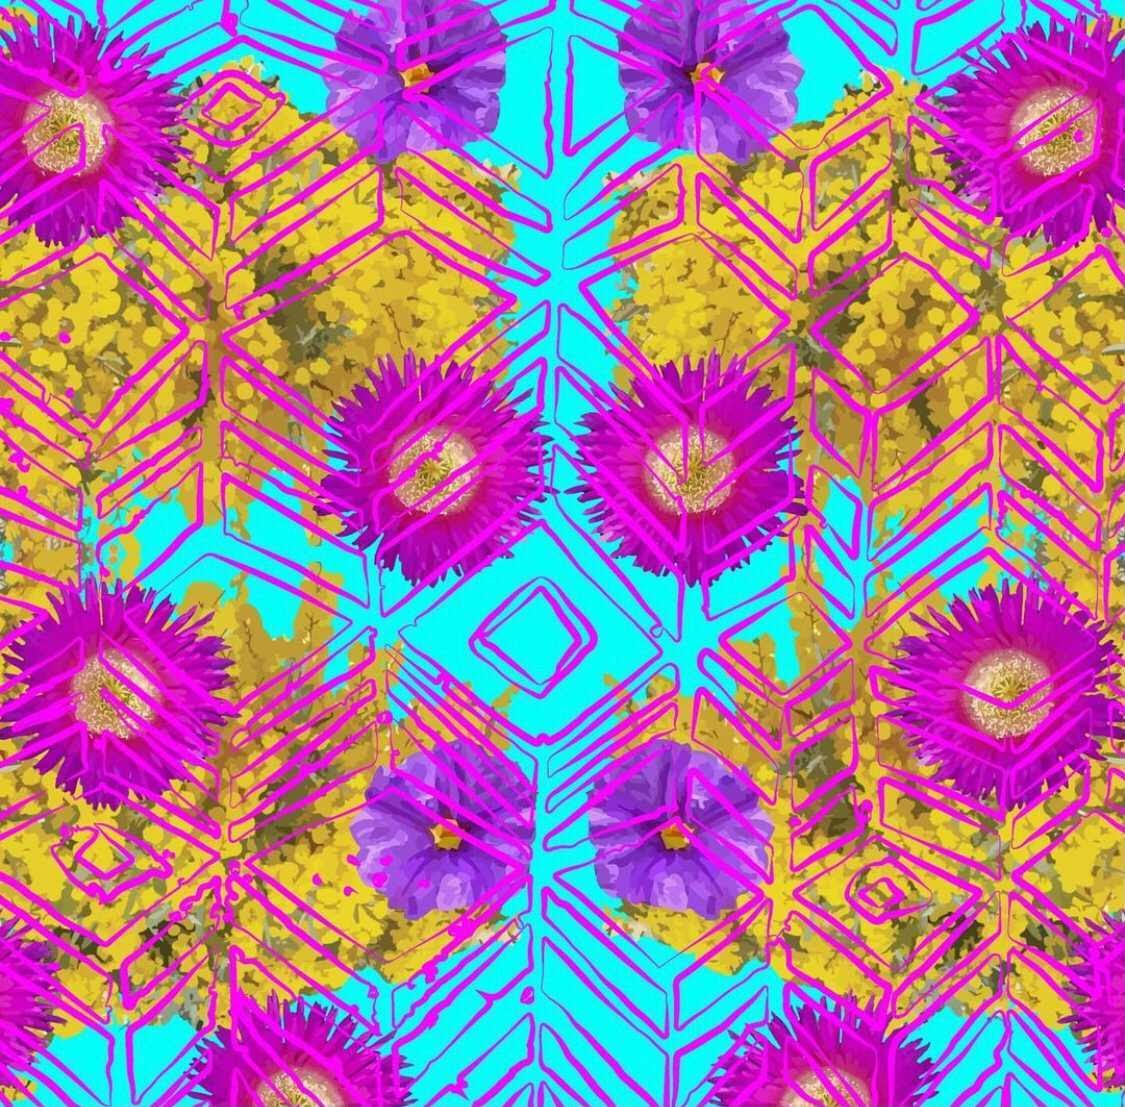 abstract artwork with purples and yellows and flowers